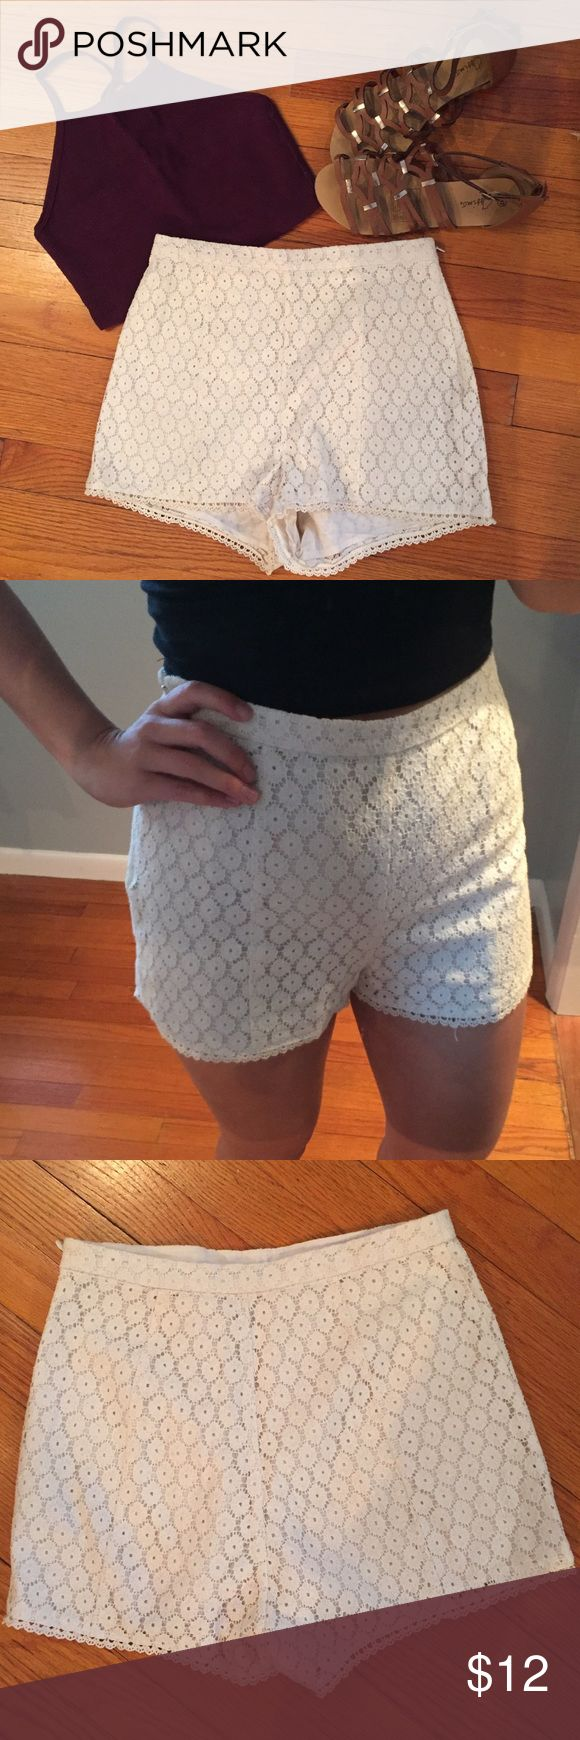 Floral Lace High Waisted Urban Outfitter shorts Kimchi Blue off white/ cream lace shorts. High waisted and side zipper. Like new, only worn a few times. Look great with a crop top and cardigan! Urban Outfitters Shorts